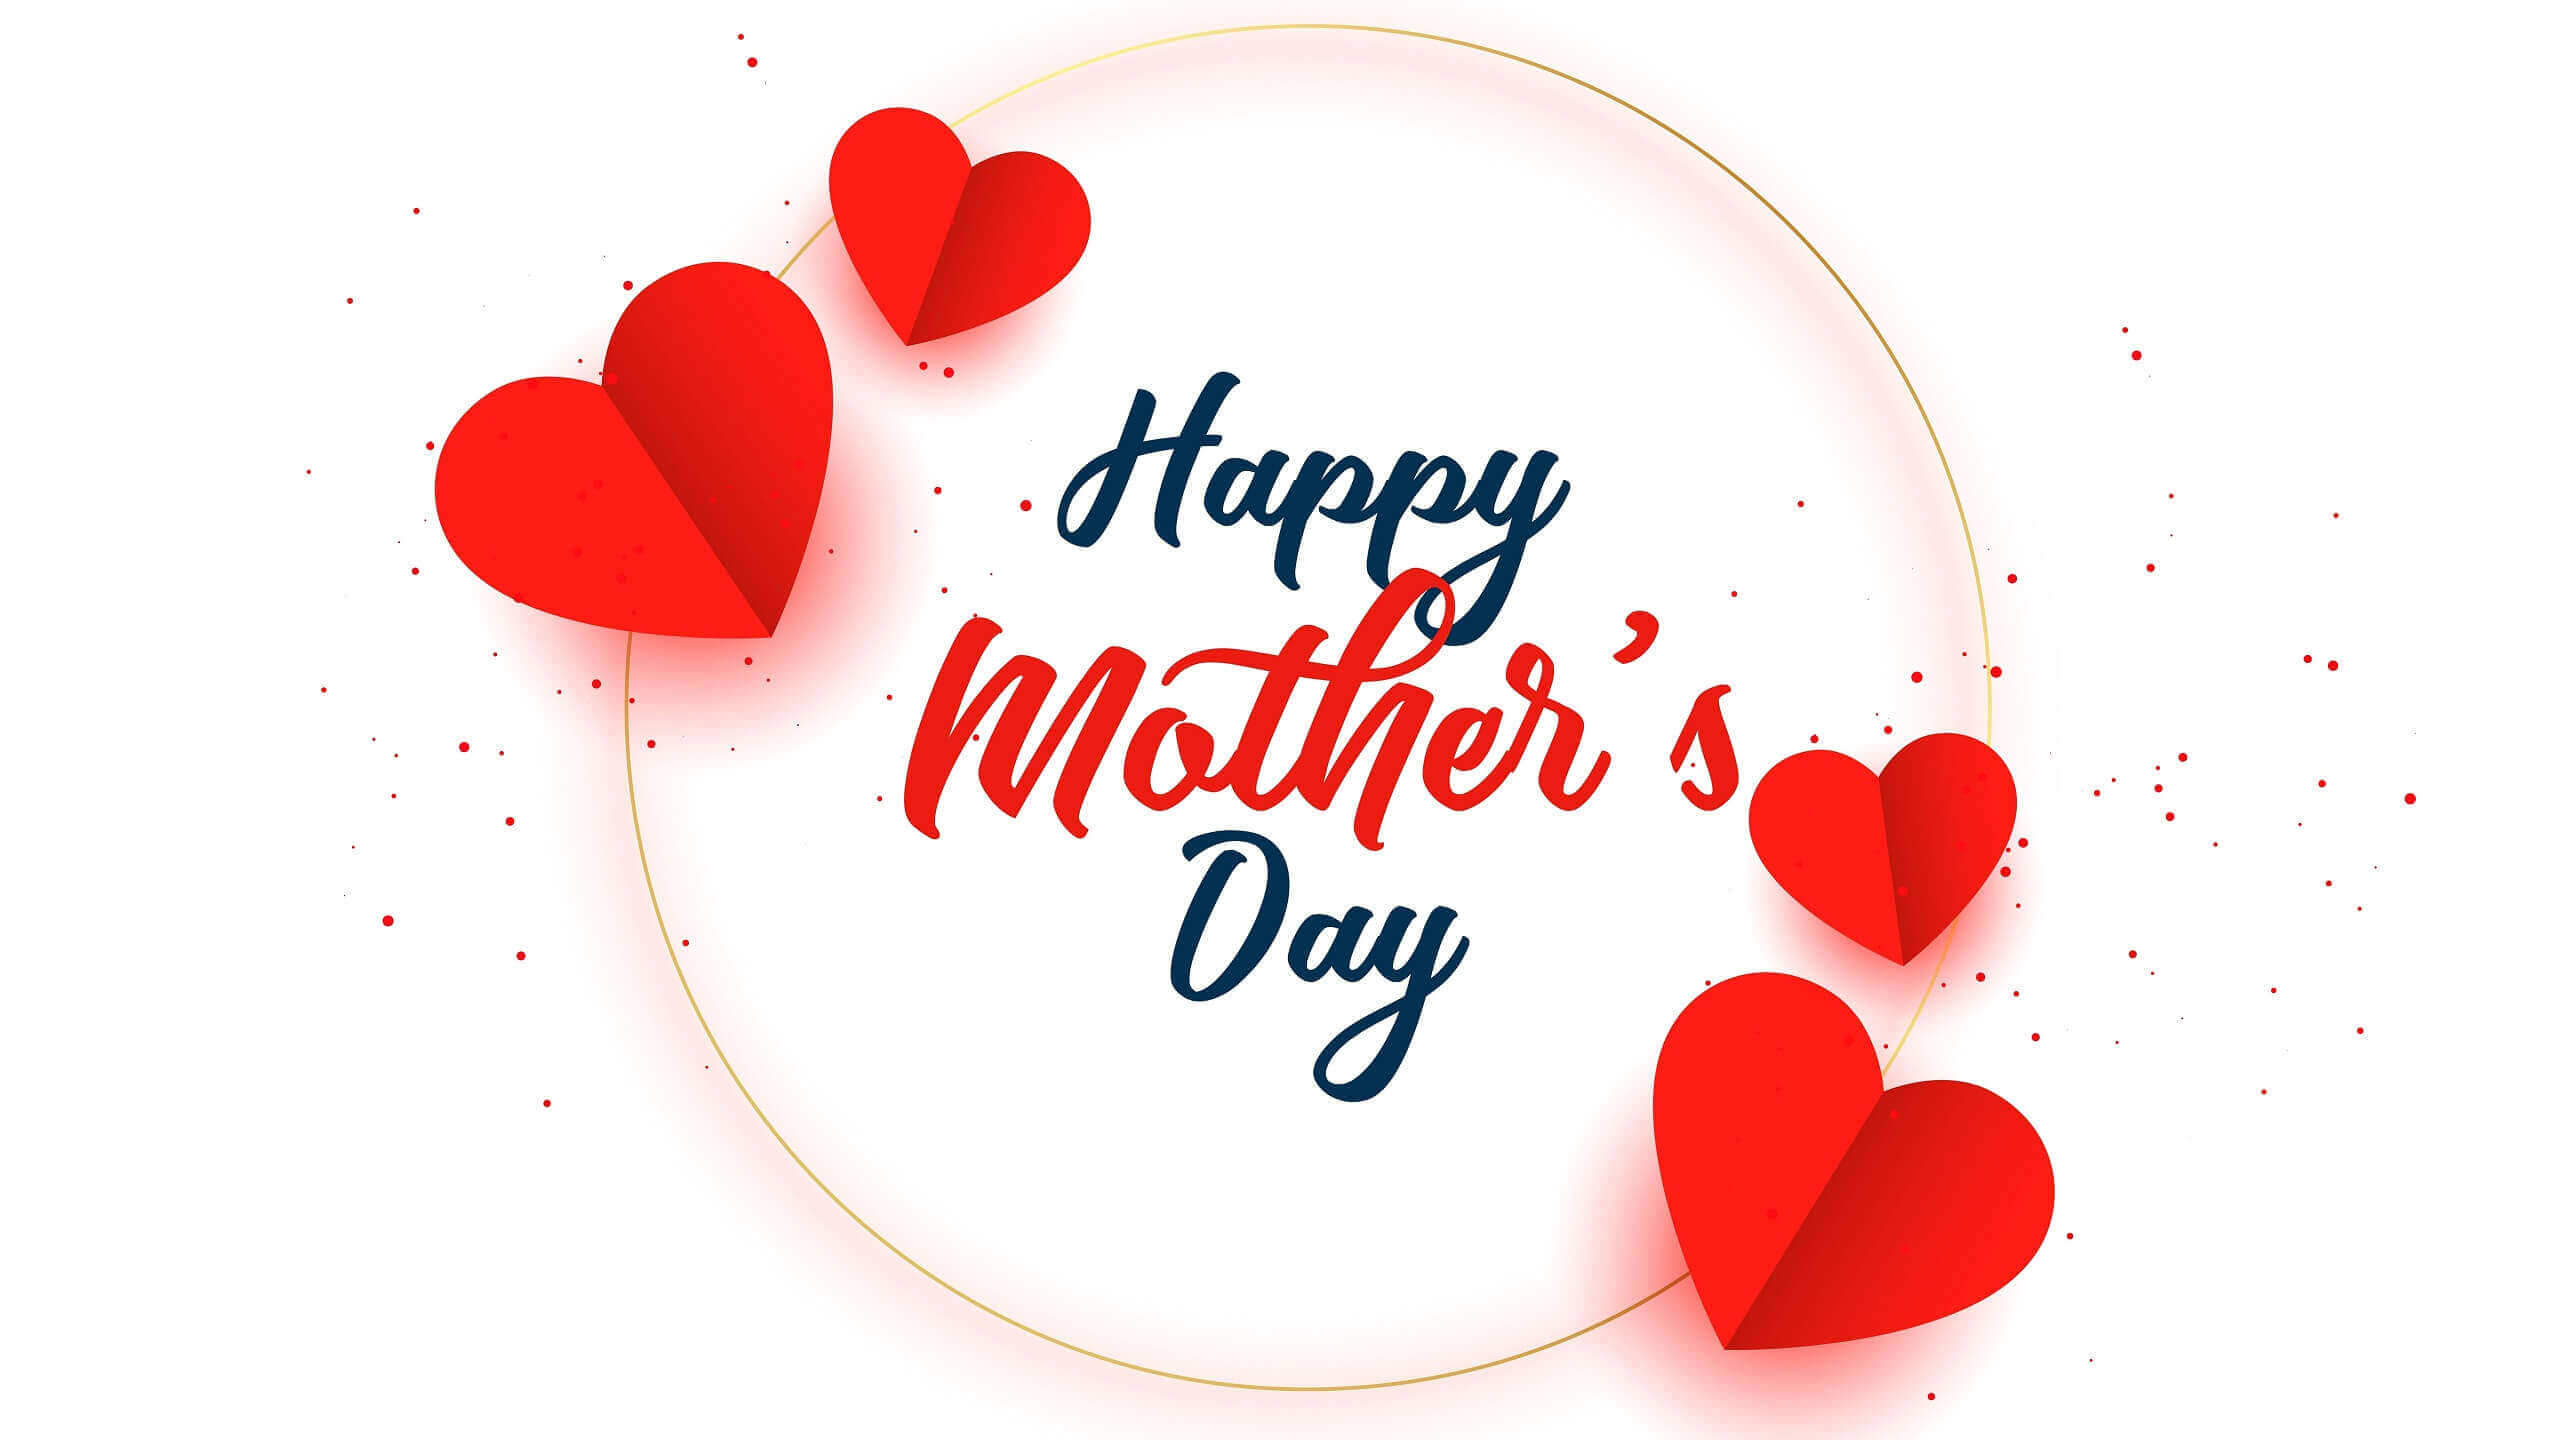 Happy Mothers Day image with Heart Bubble